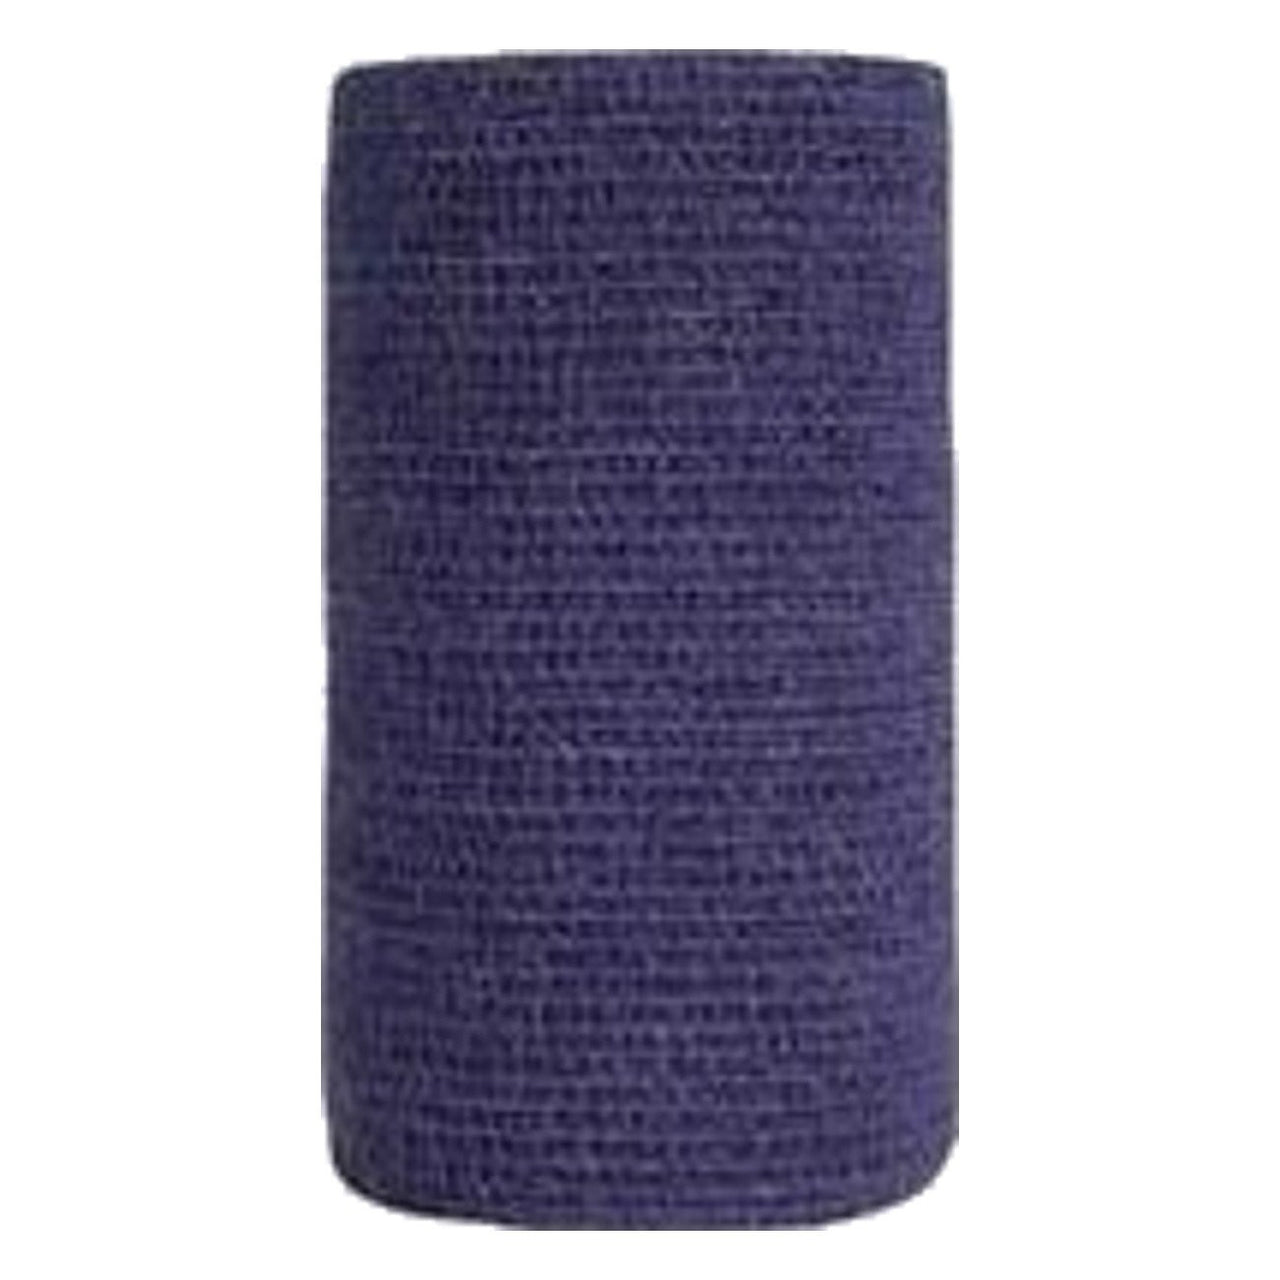 Andover Powerflex 4X15 Purple - Wound Dressing Andover - Canada